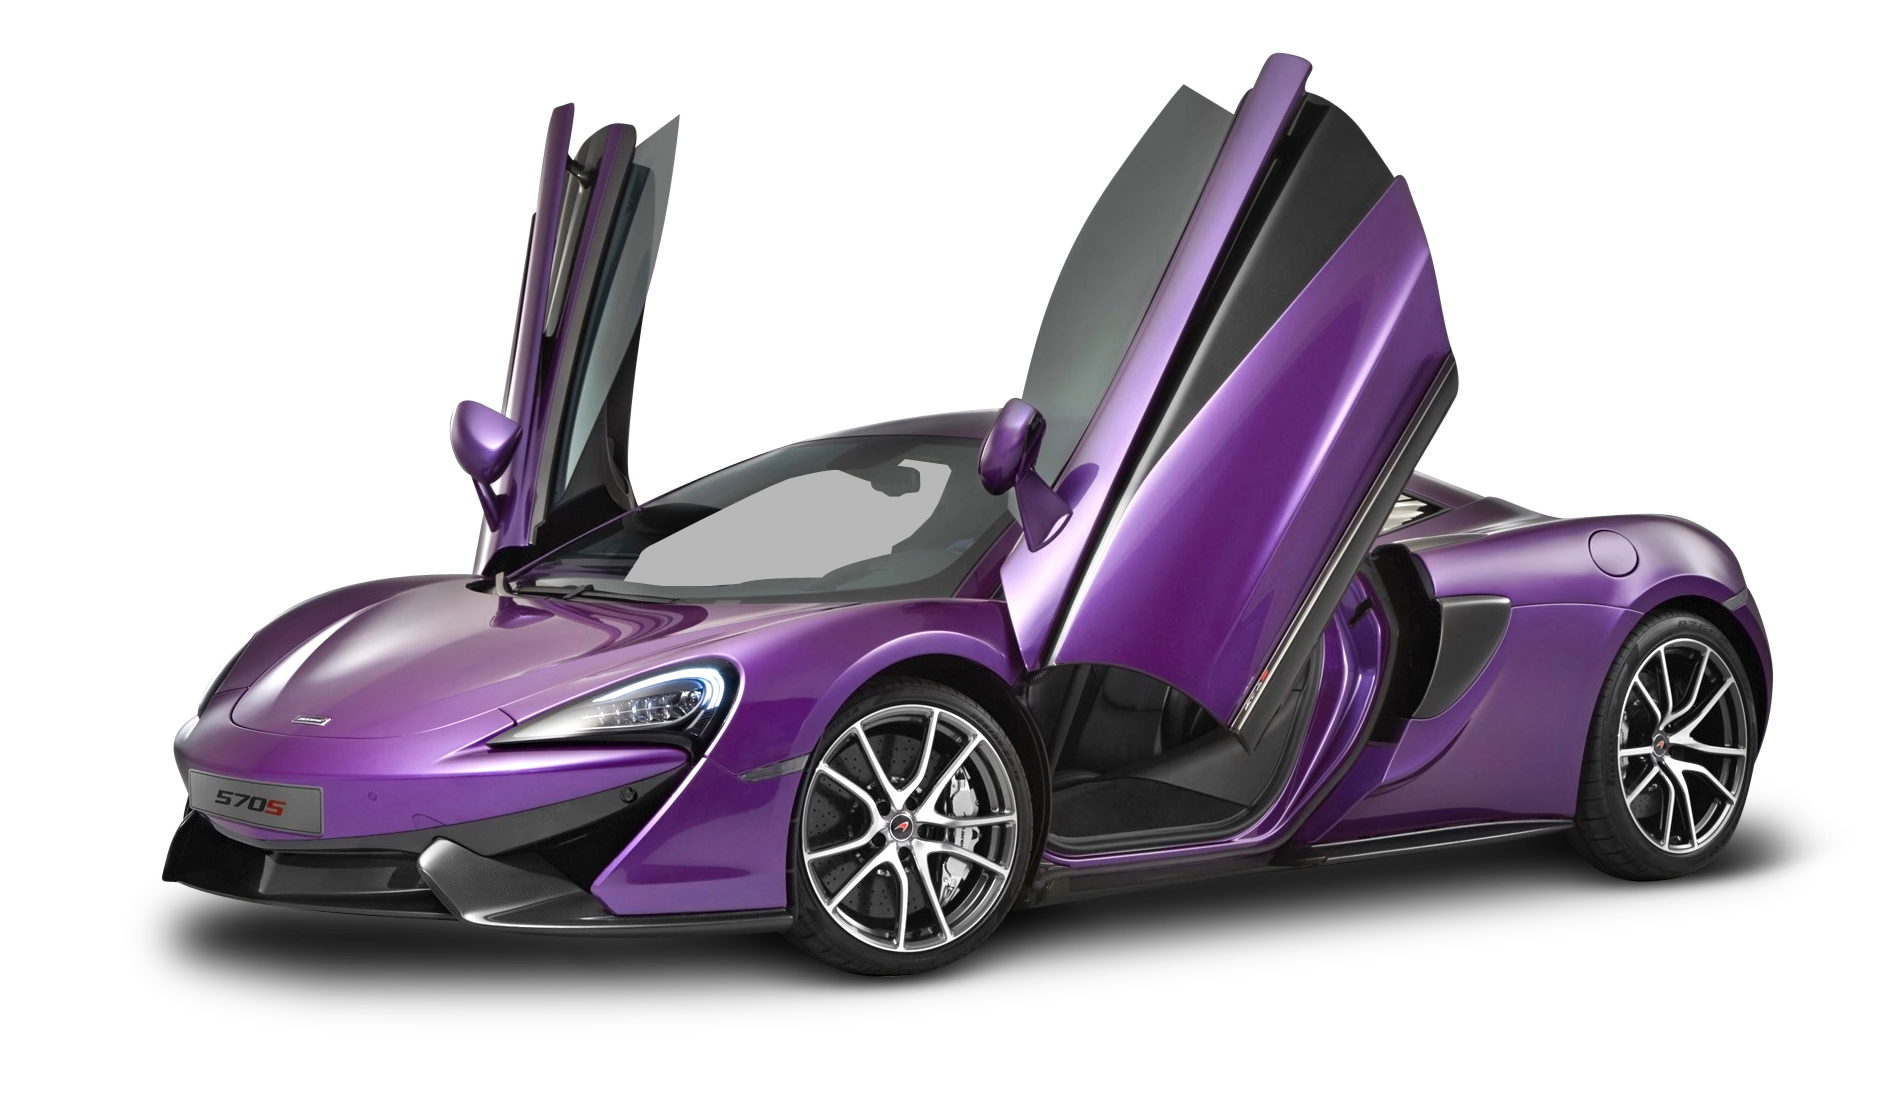 Cars PNG images free download, car PNG.